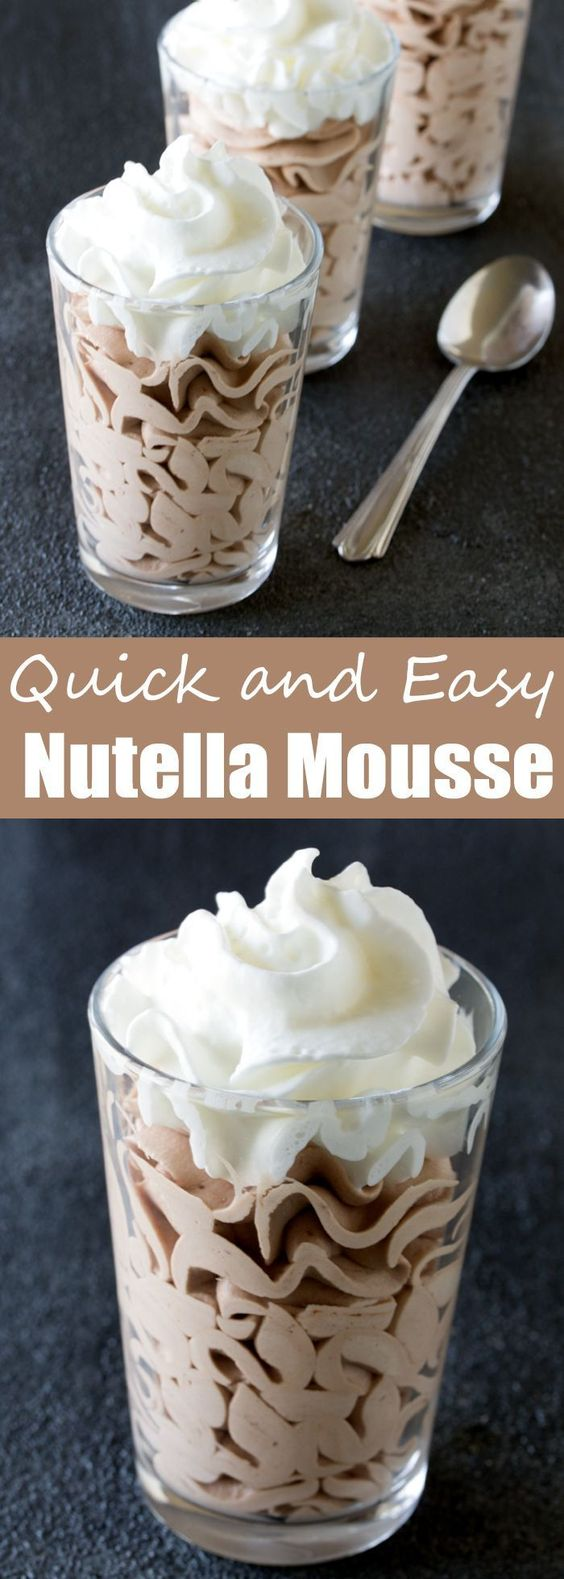 QUICK AND EASY NUTELLA MOUSSE #quickrecipes #easyrecipes #nutella #mousse #dessert #dessertrecipes